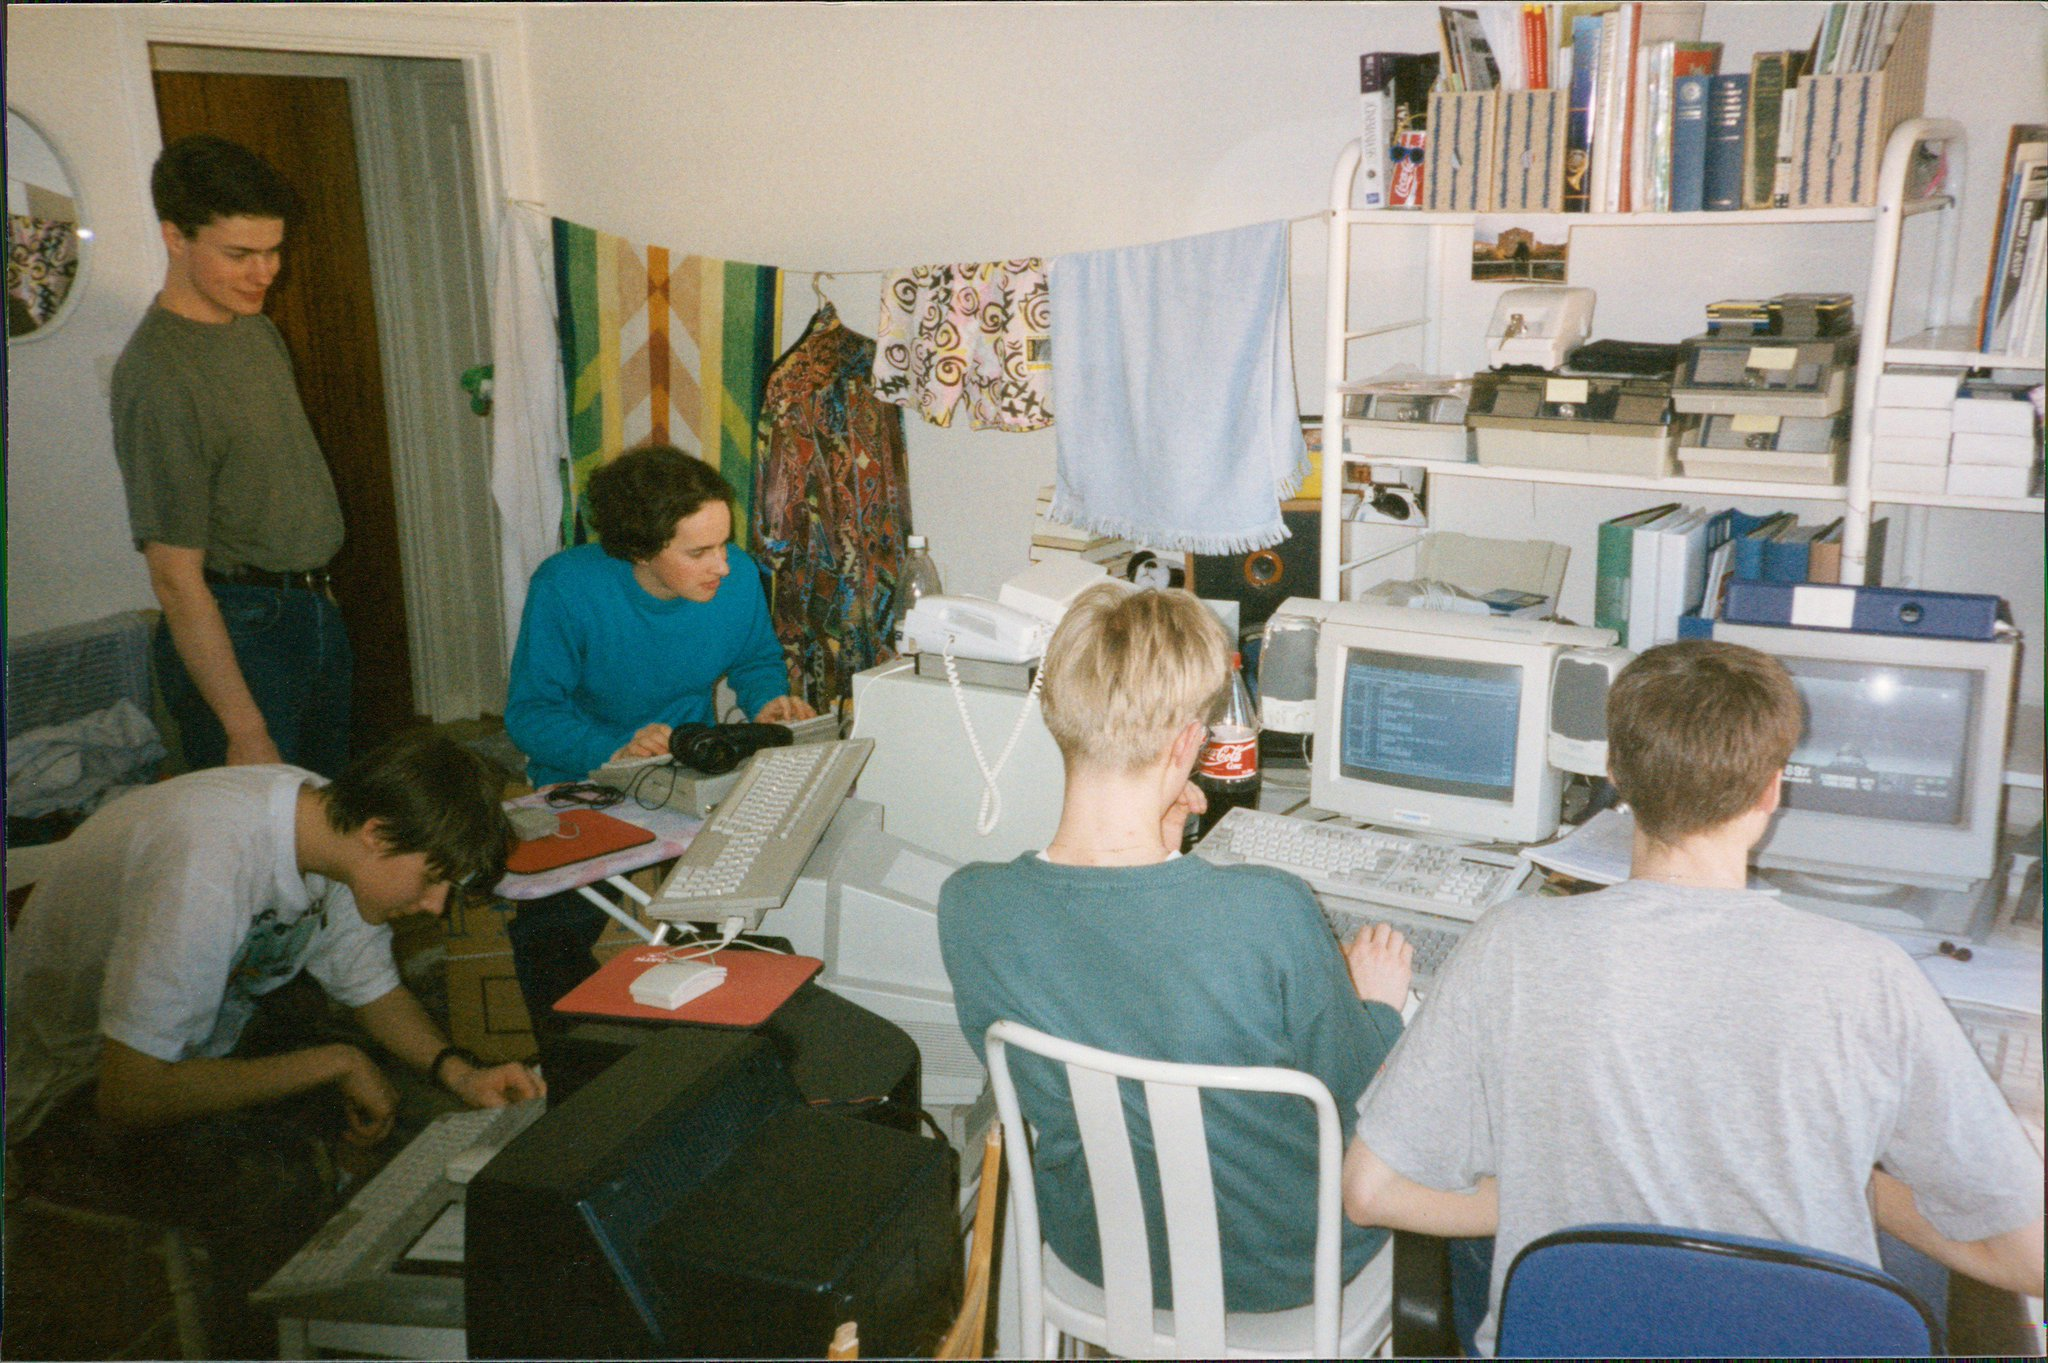 This picture was taken before UDS had an actual office. The Substation team came together during a long weekend off school for a 'coding sprint' (more info in the interview).